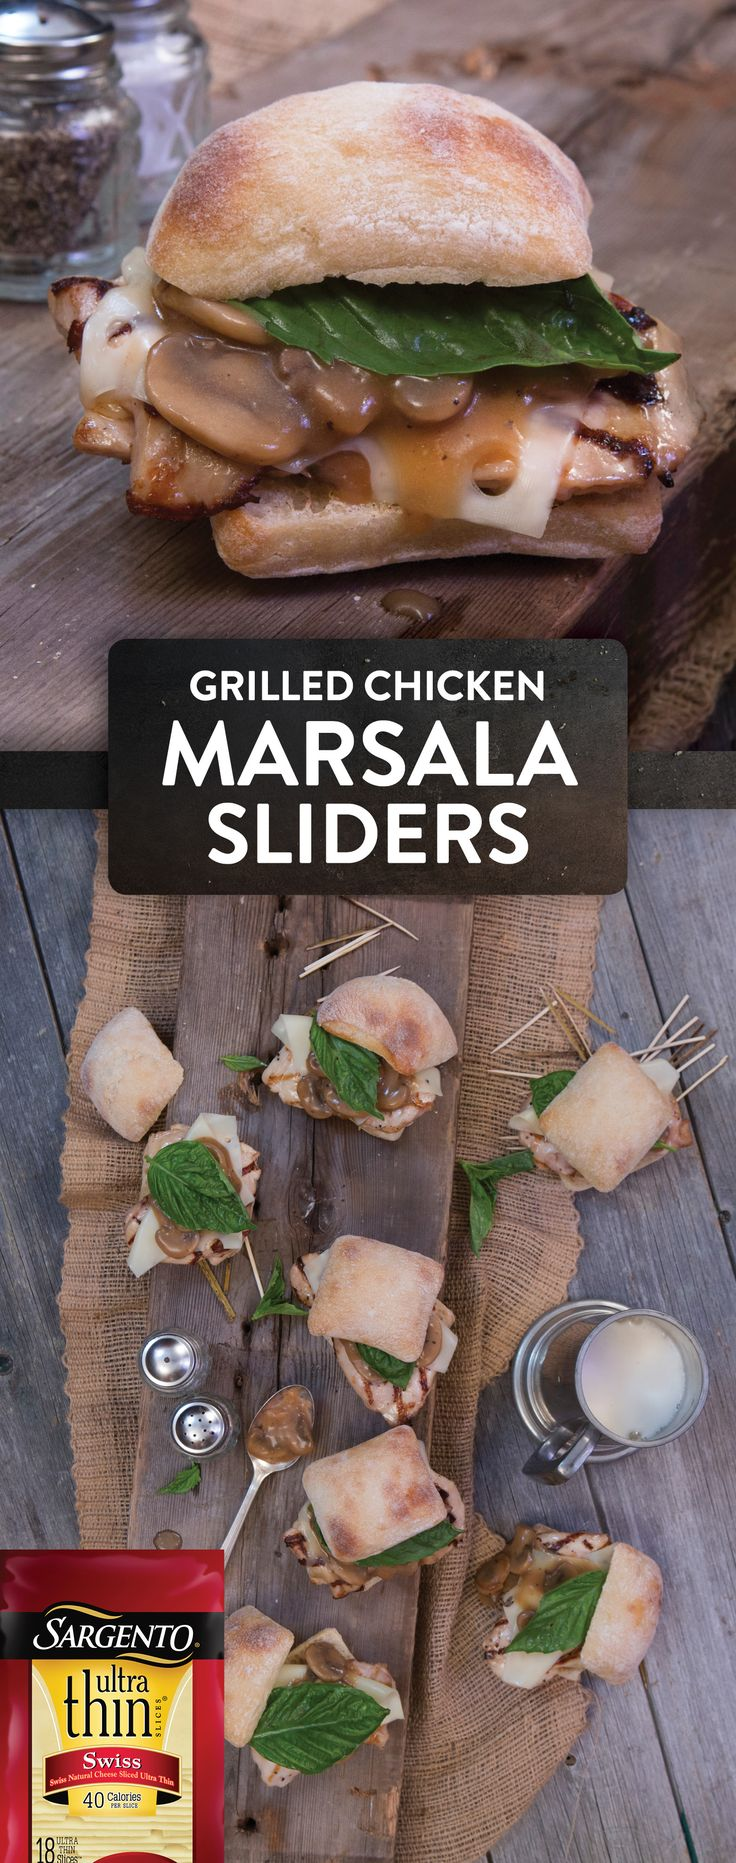 "They call them ""sliders"" because they slide directly off your plate and into your mouth, and these tasty tiny sandwiches will do just that. We've combined sweet marsala chicken, tender mushrooms, our savory Ultra Thin® Swiss Natural Cheese slices and sweet basil to create a unique slider that will satisfy everyone."